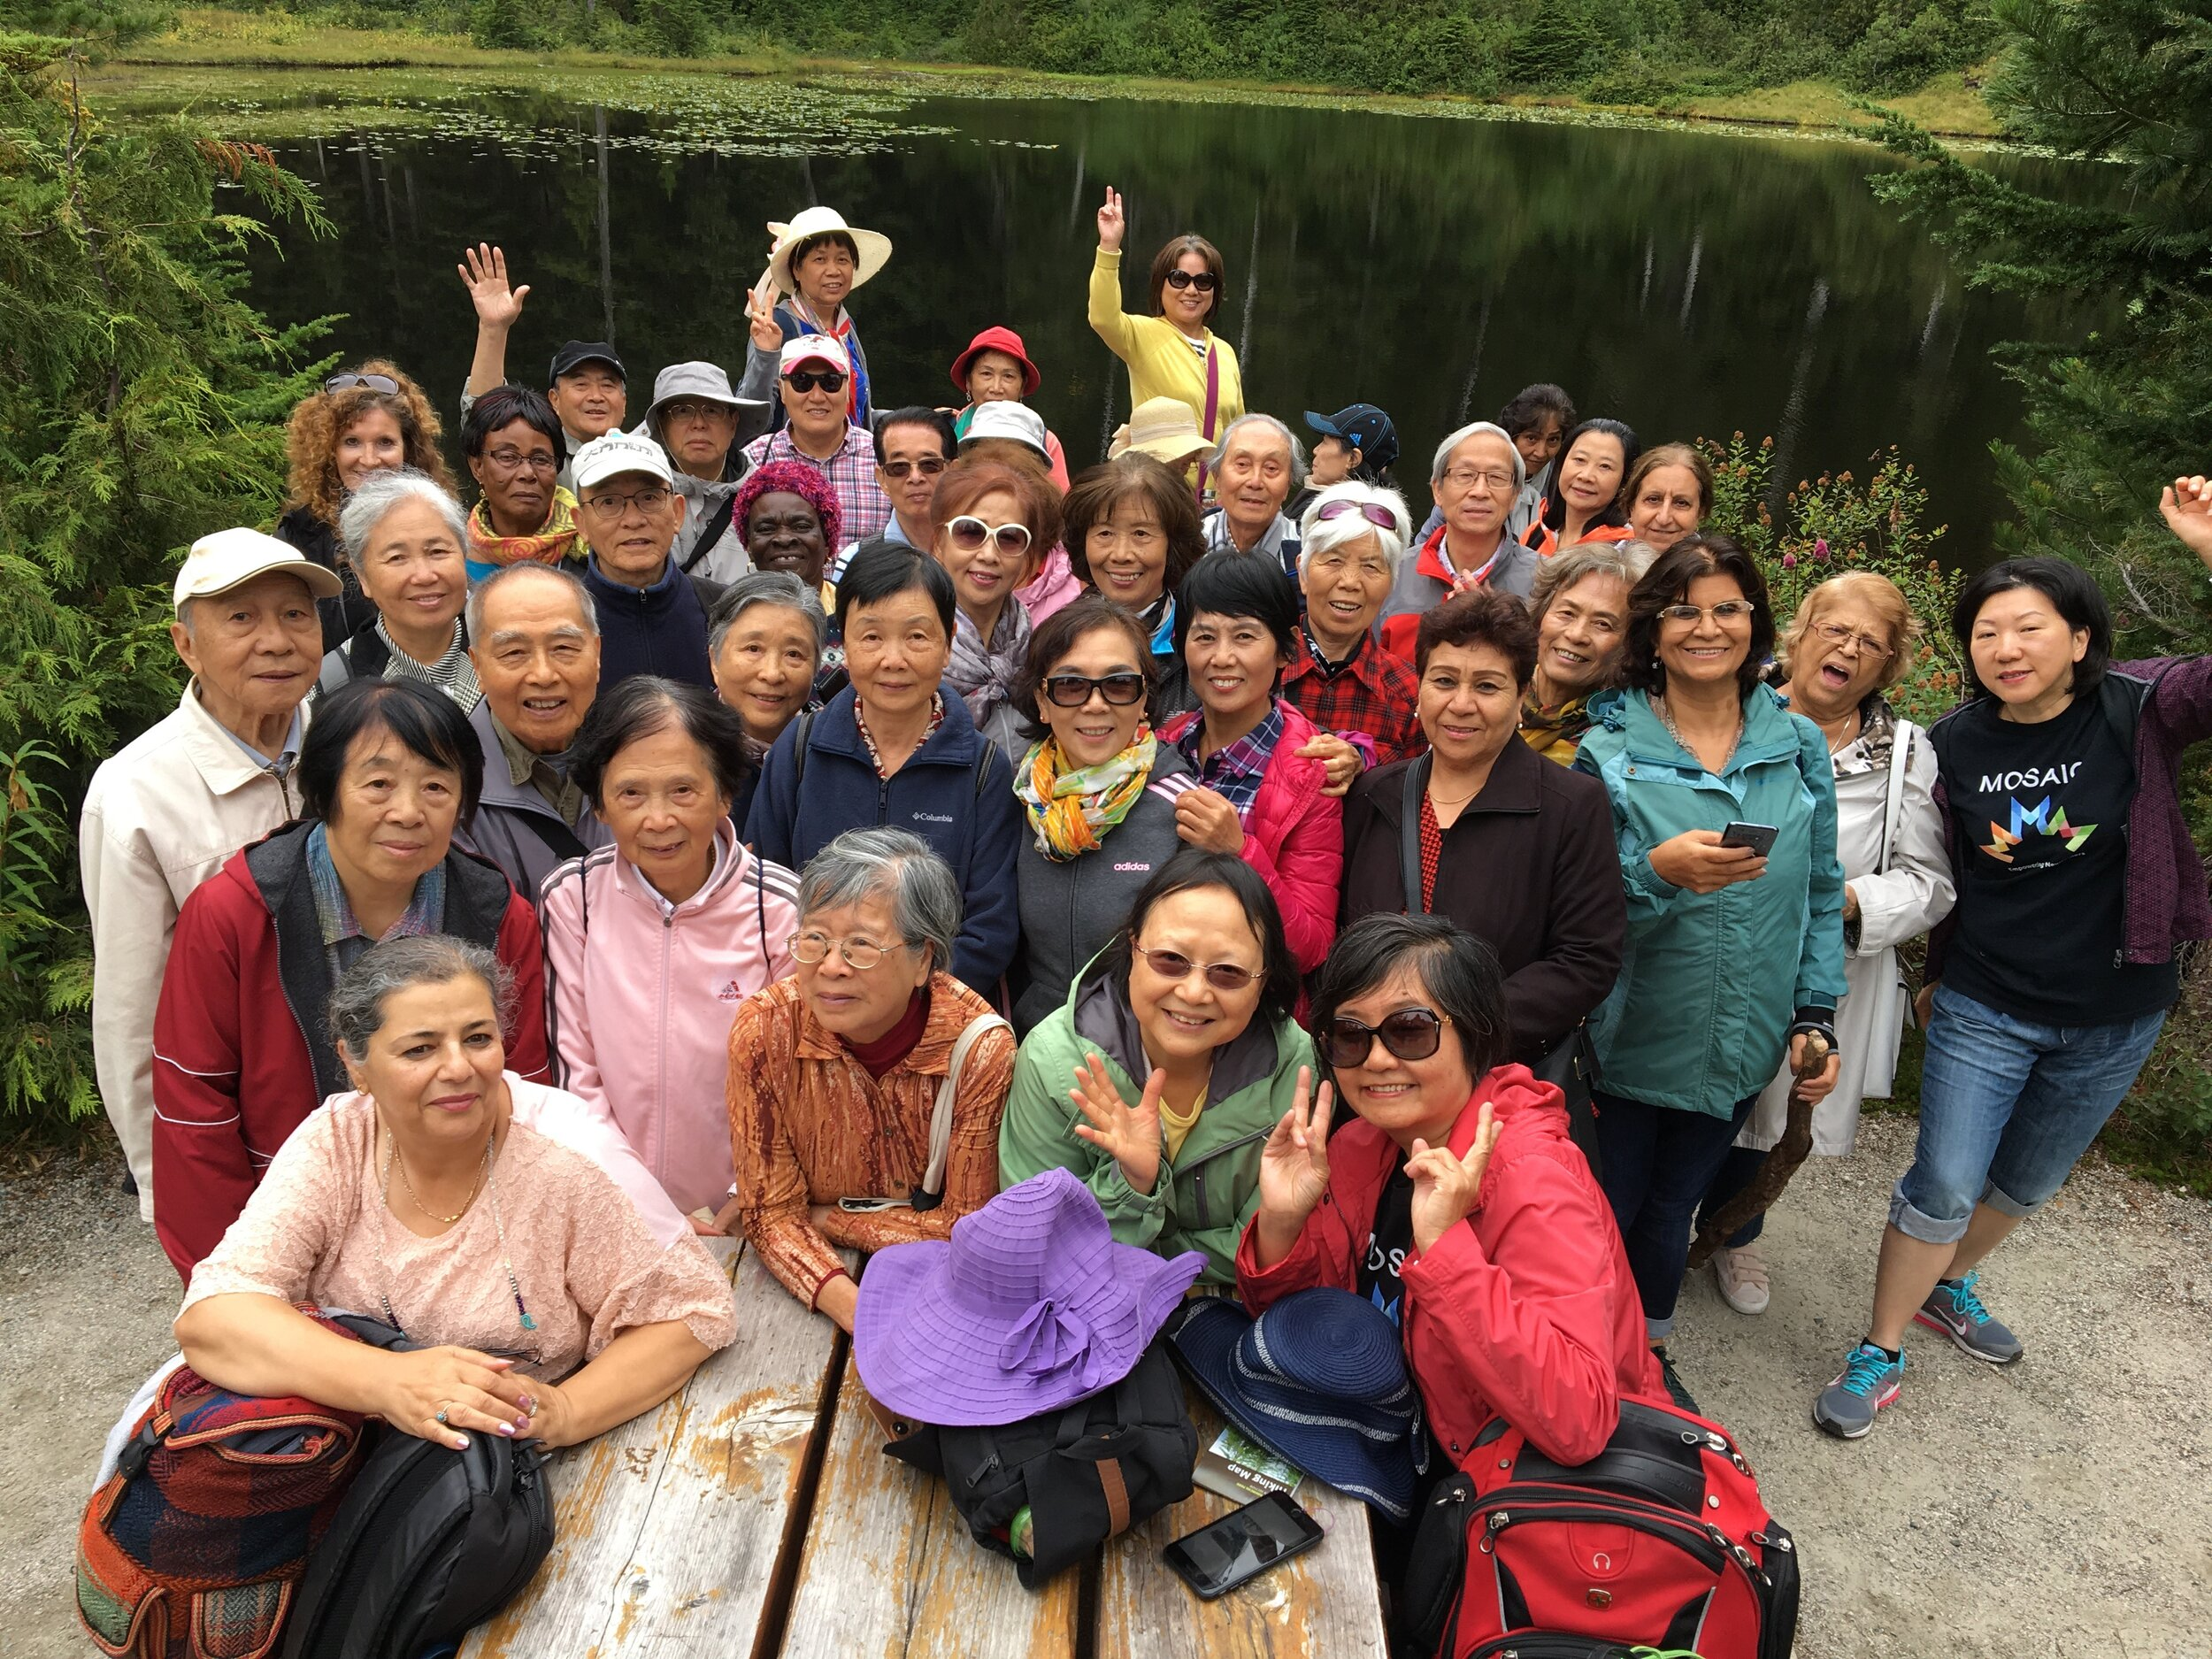 Group Pic by the lake MOSAIC.jpg